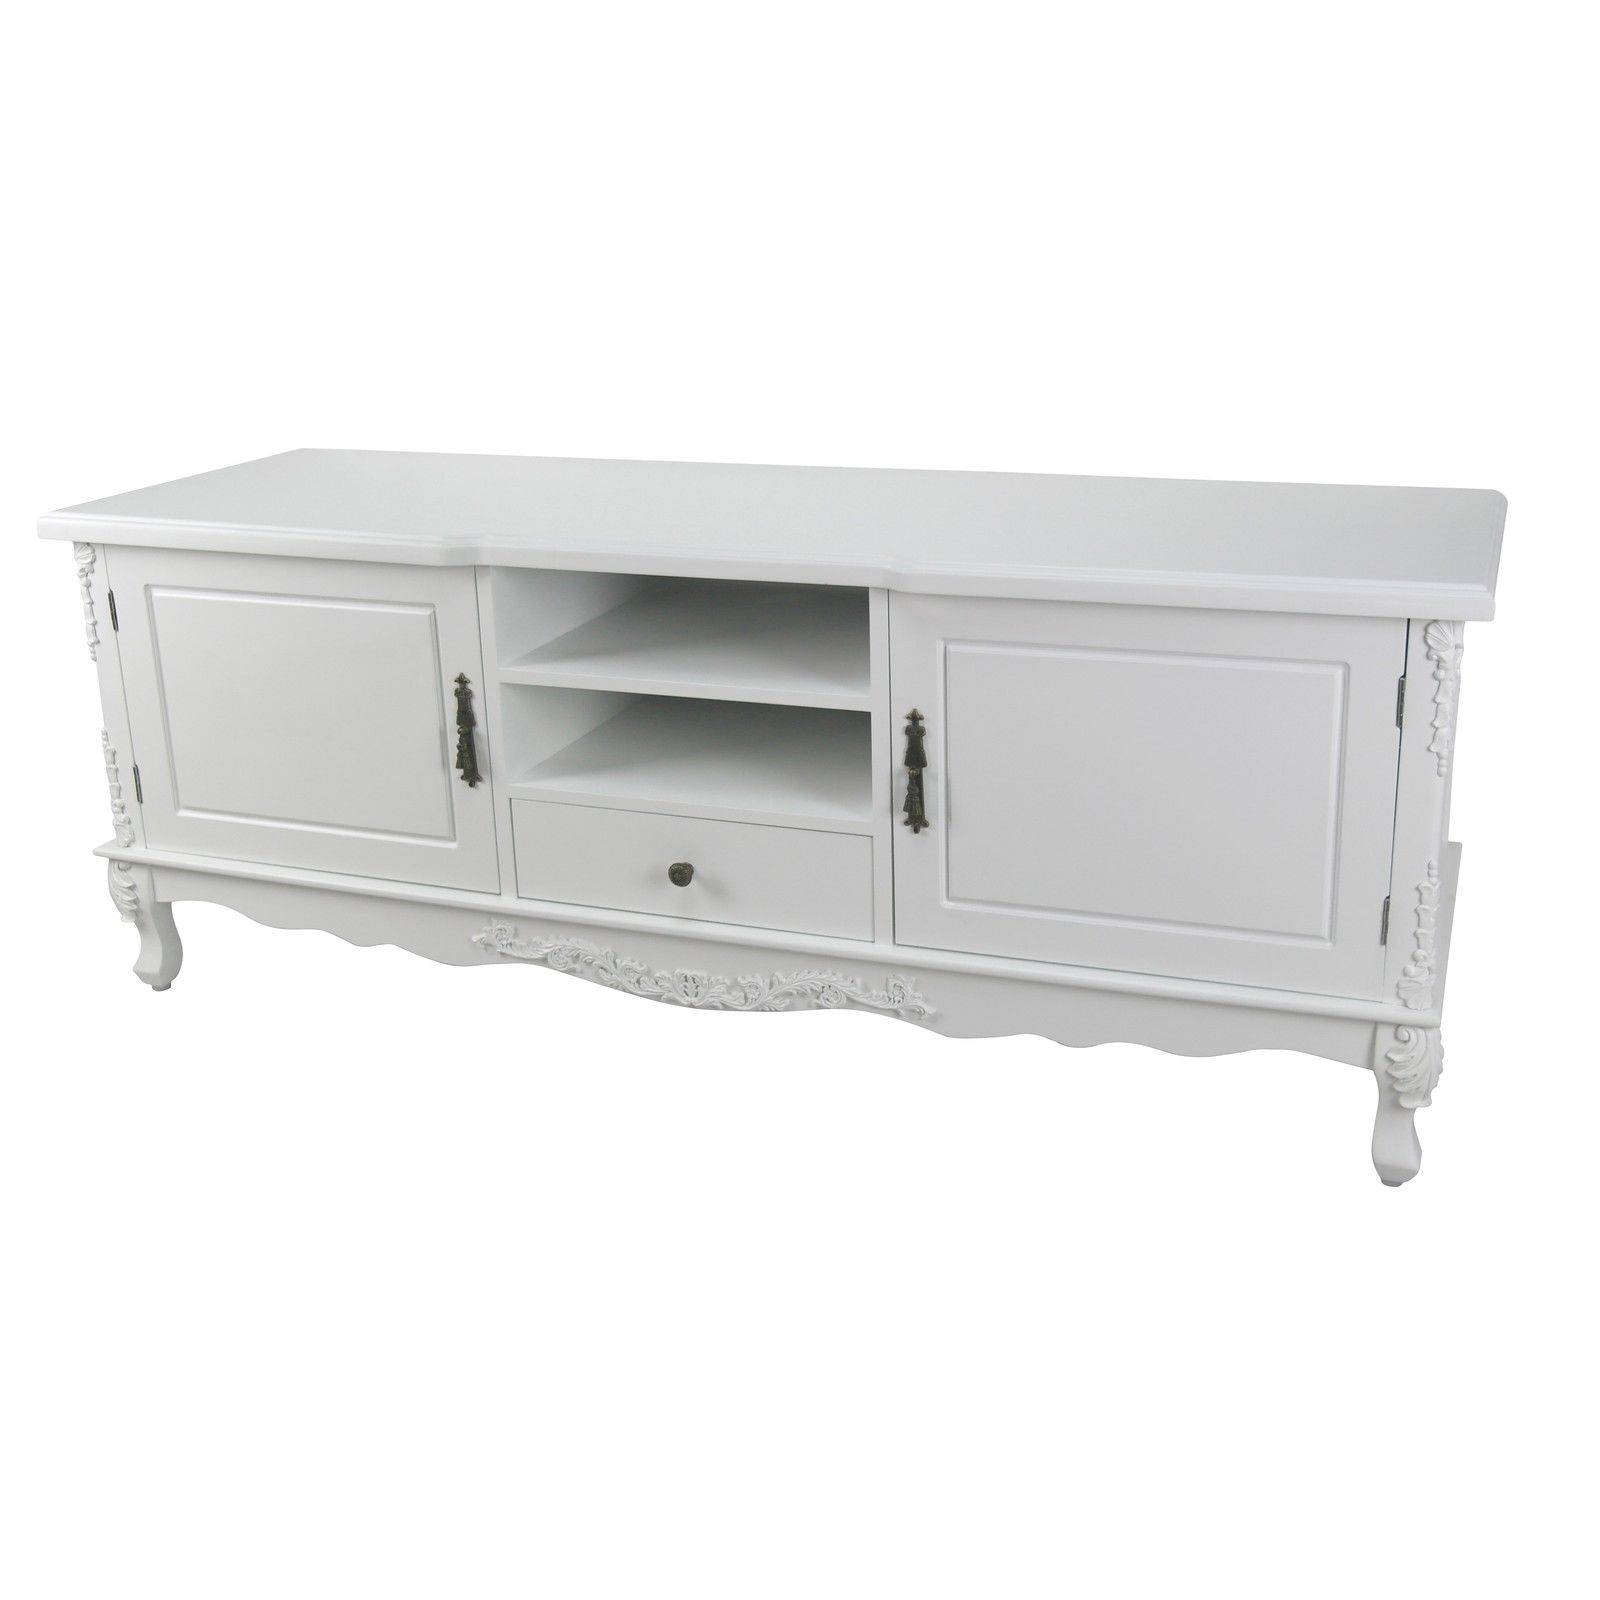 French Style White Large Cabinet Tv Unit Furniture - La Maison pertaining to French Style Tv Cabinets (Image 9 of 15)